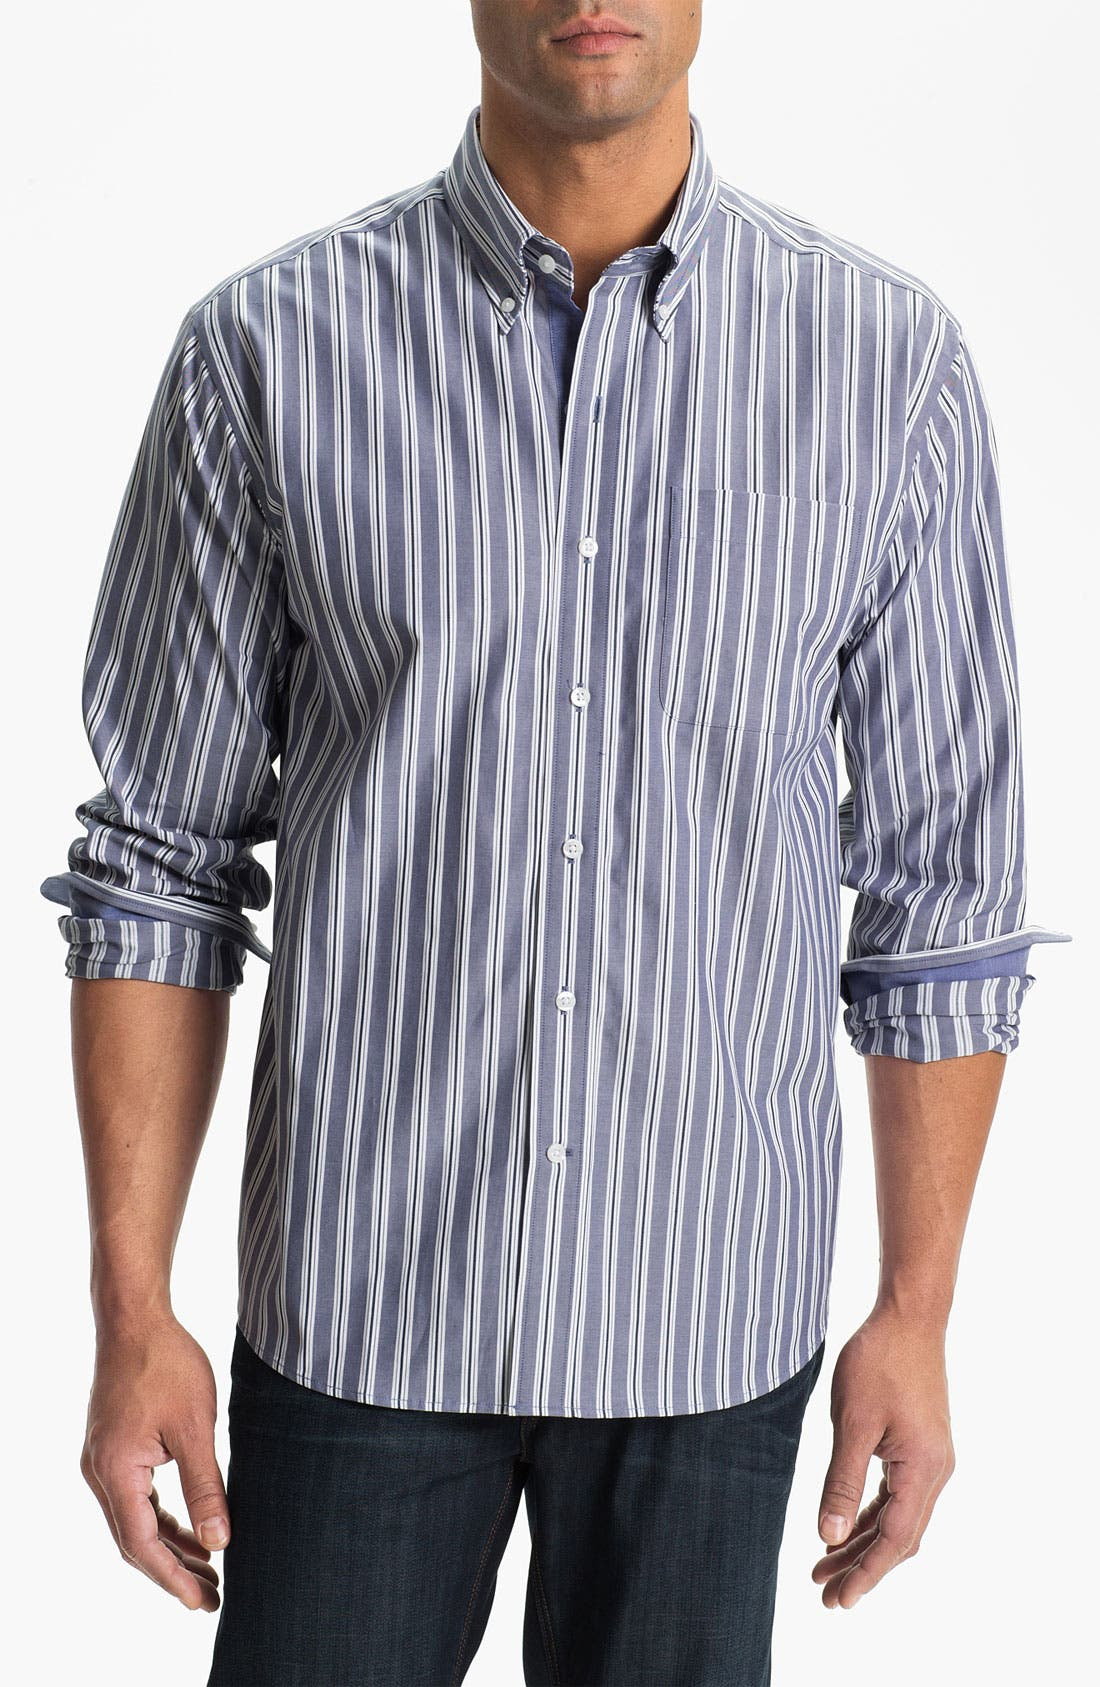 Main Image - Cutter & Buck 'Atherton Stripe' Regular Fit Sport Shirt (Big & Tall)